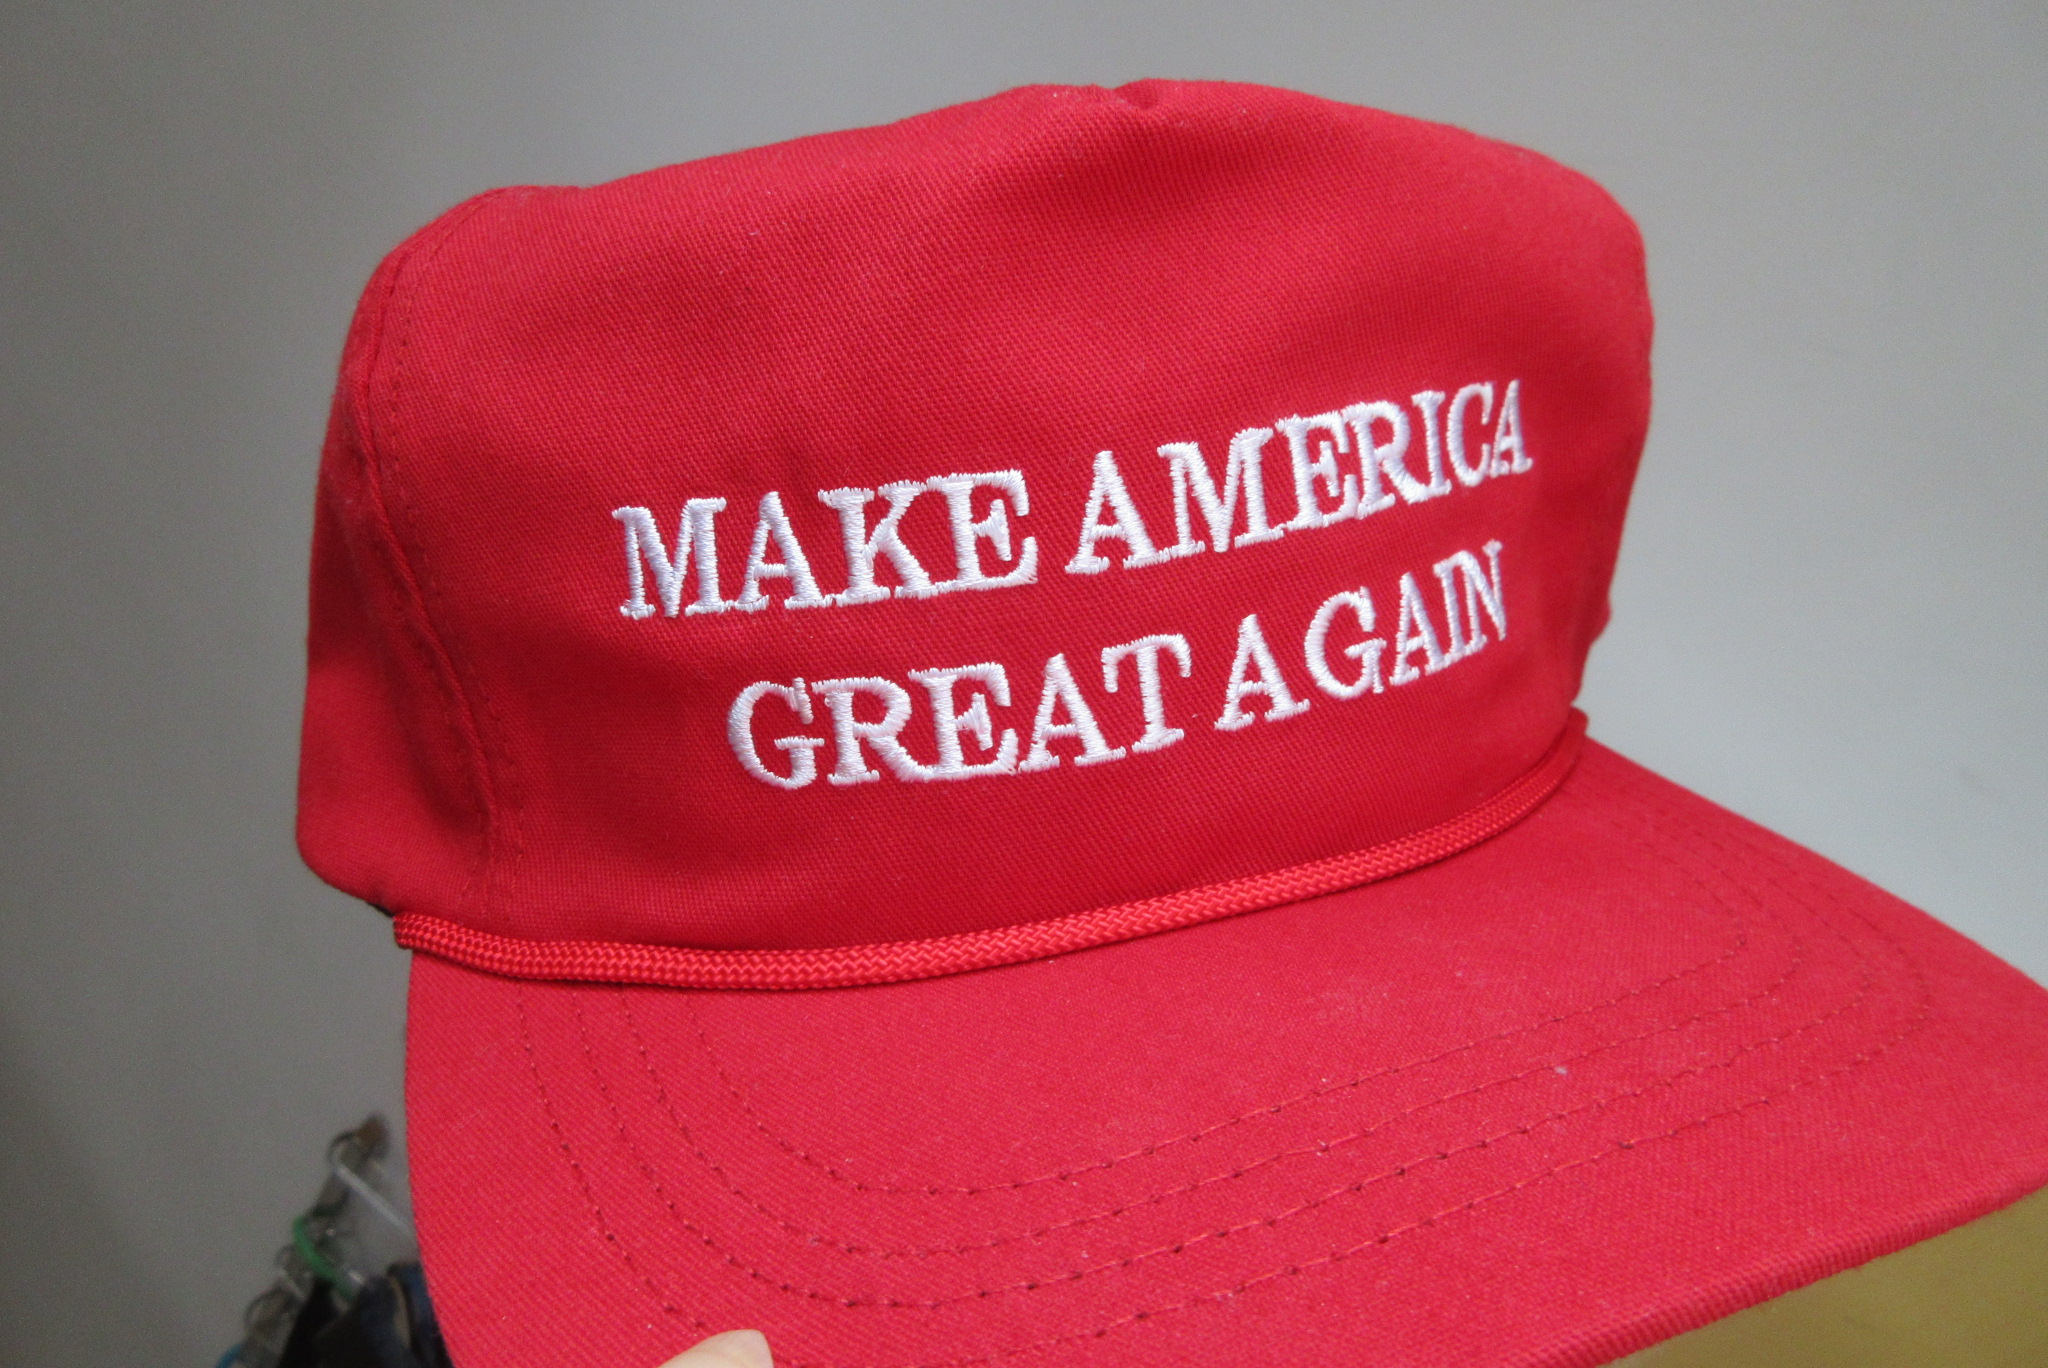 HK_fans_item_the_red_cap_hat_cotton_white_words_Make_America_Great_Again_label_made_in_USA_CF_headwear_April_2017_IX1_05.jpg